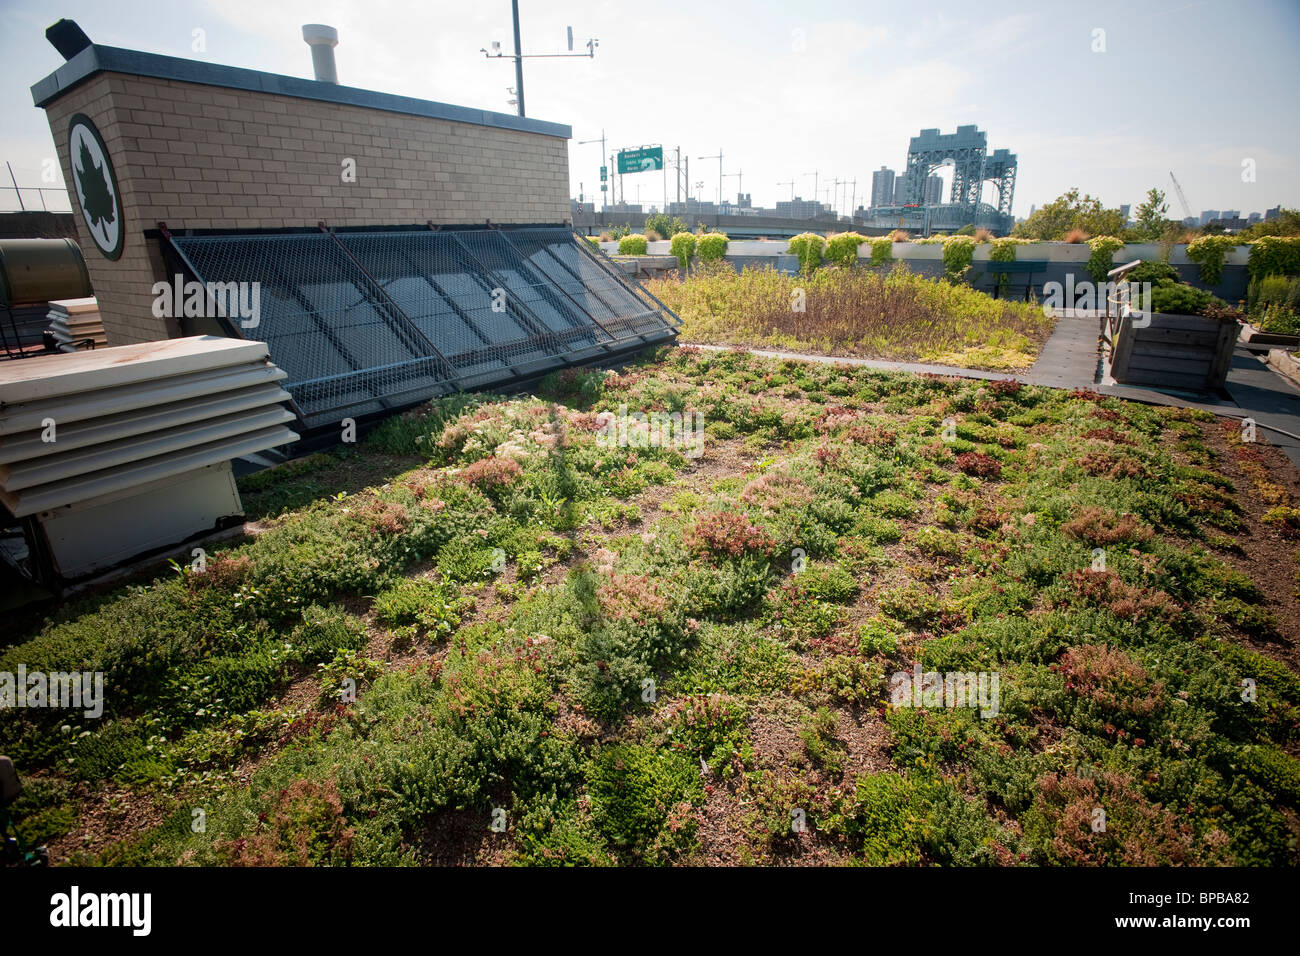 5 Boro Green Roof Garden On The Roof Of The NYC Parks And Recreation Dept.  Administration Building On Randallu0027s Island In NY